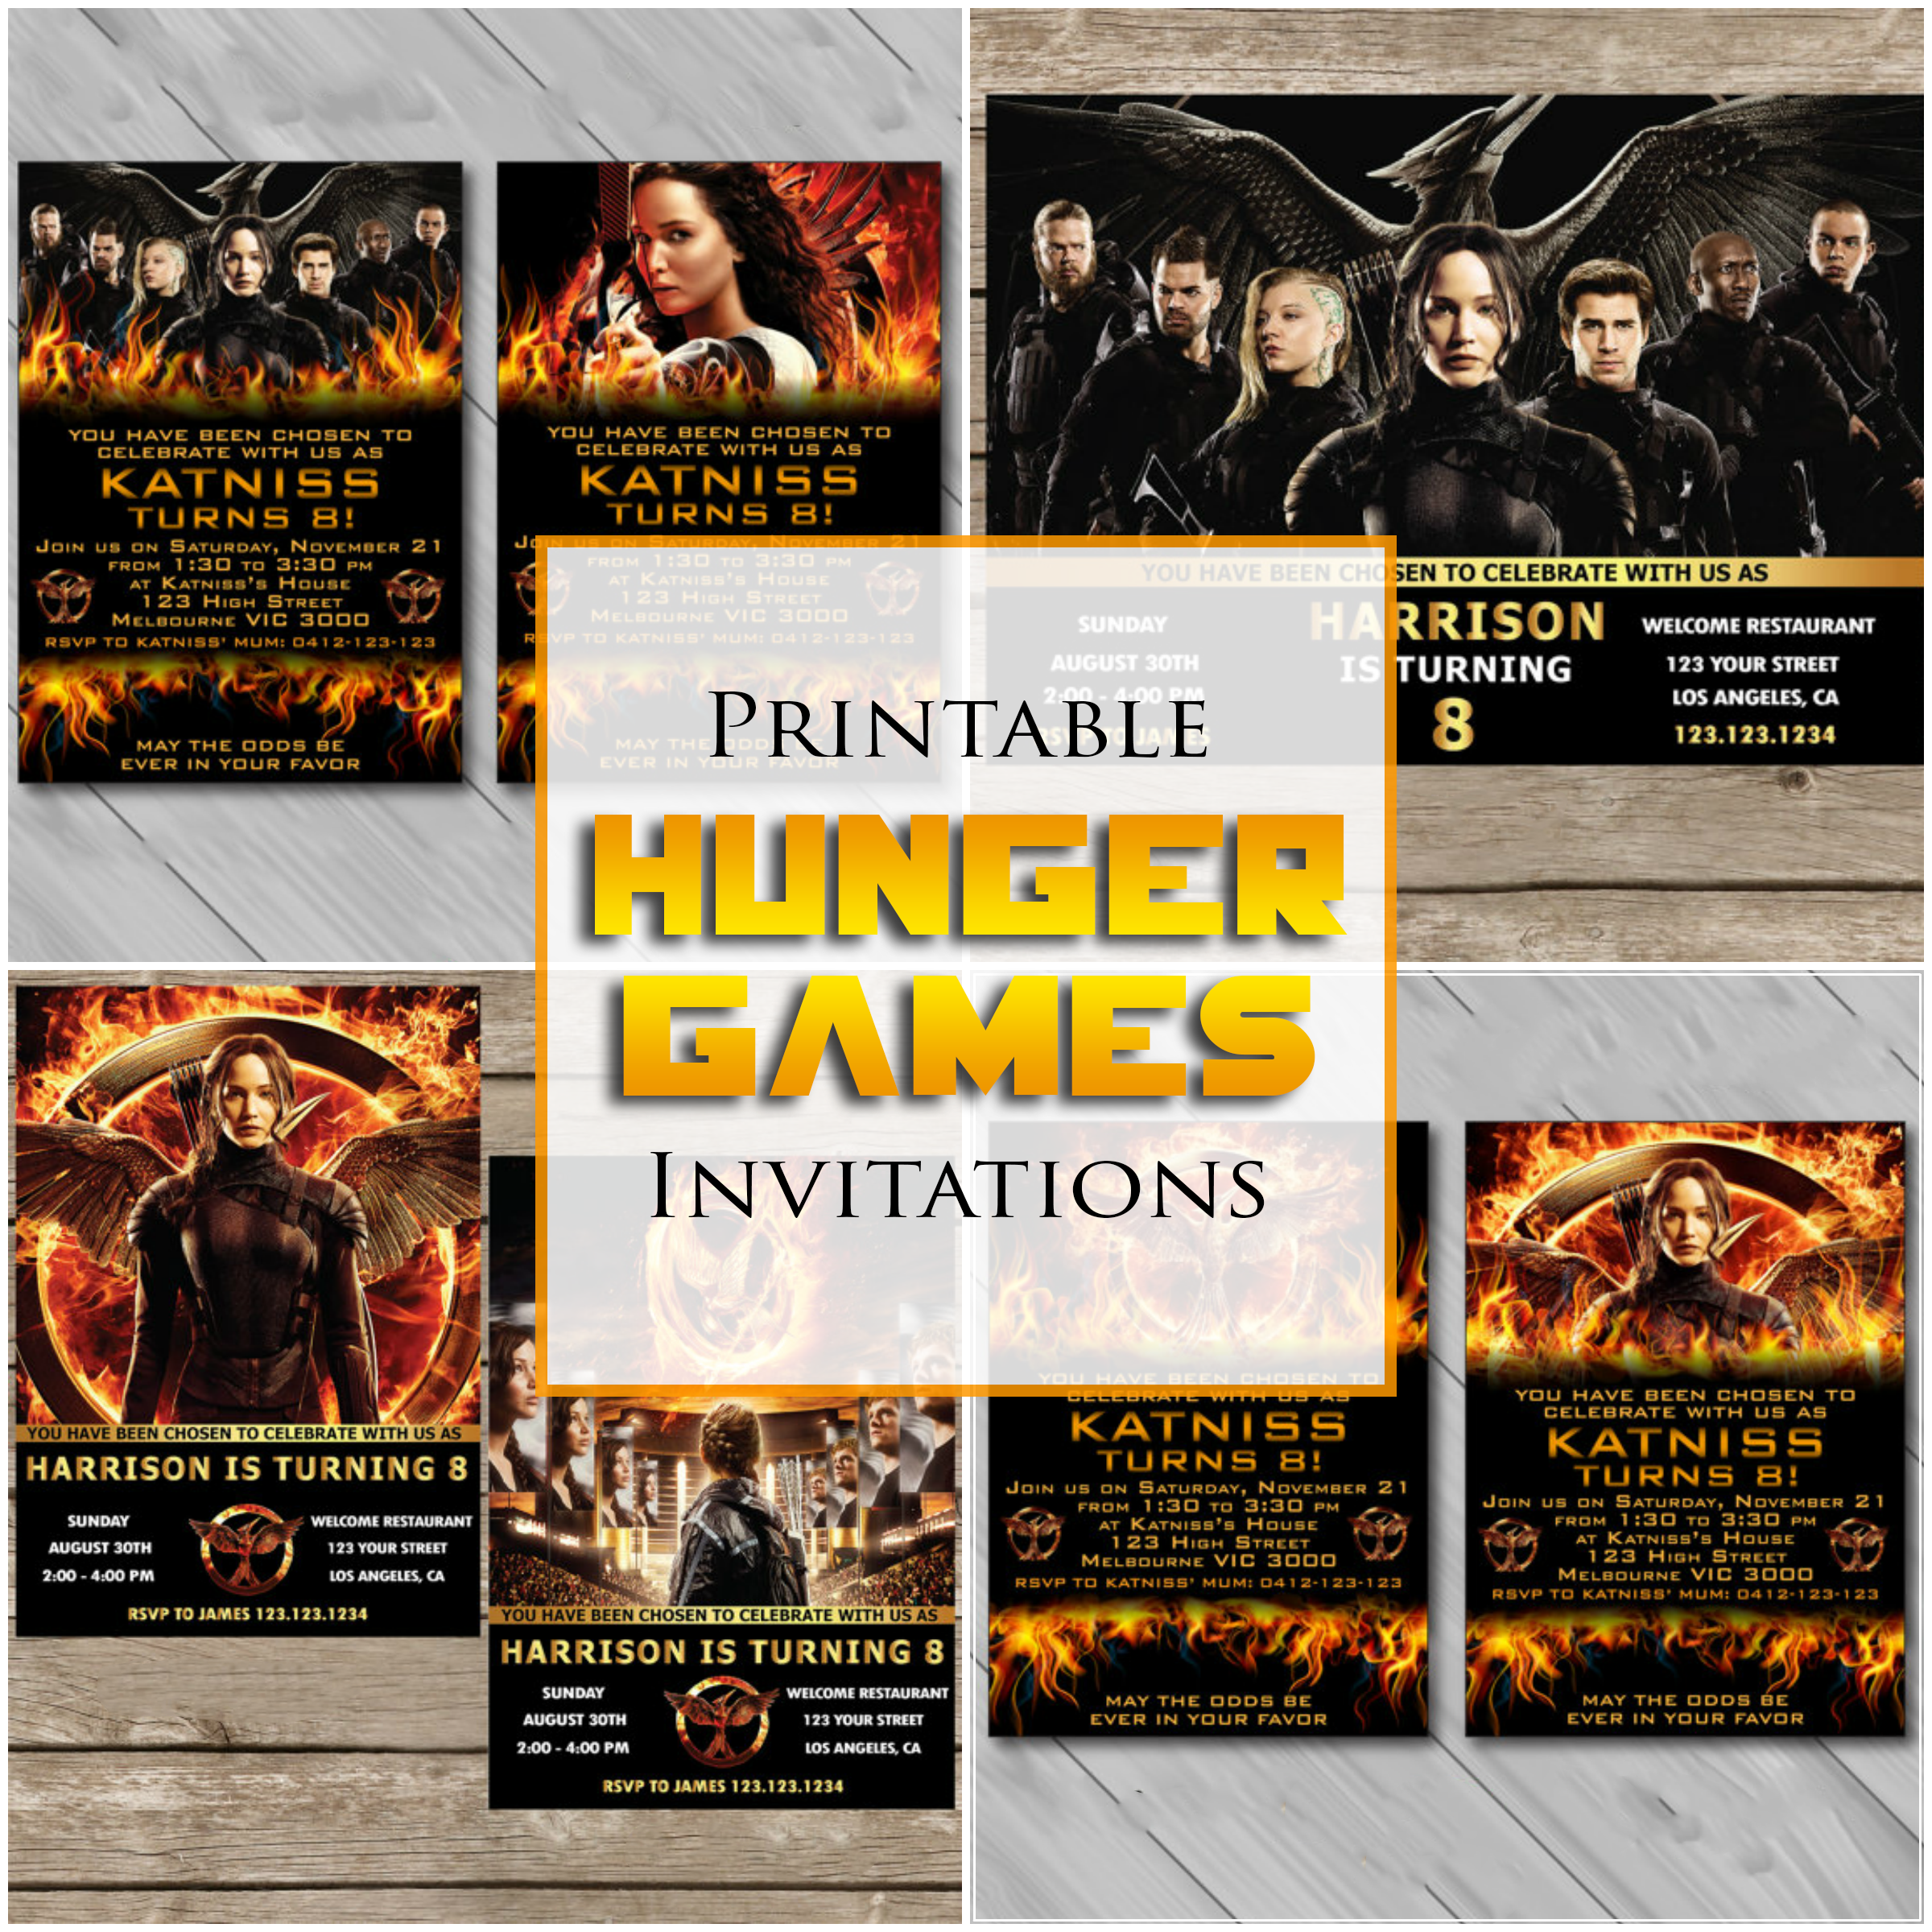 DIY Personalized Printable Hunger Games Invitations For A Birthday ...